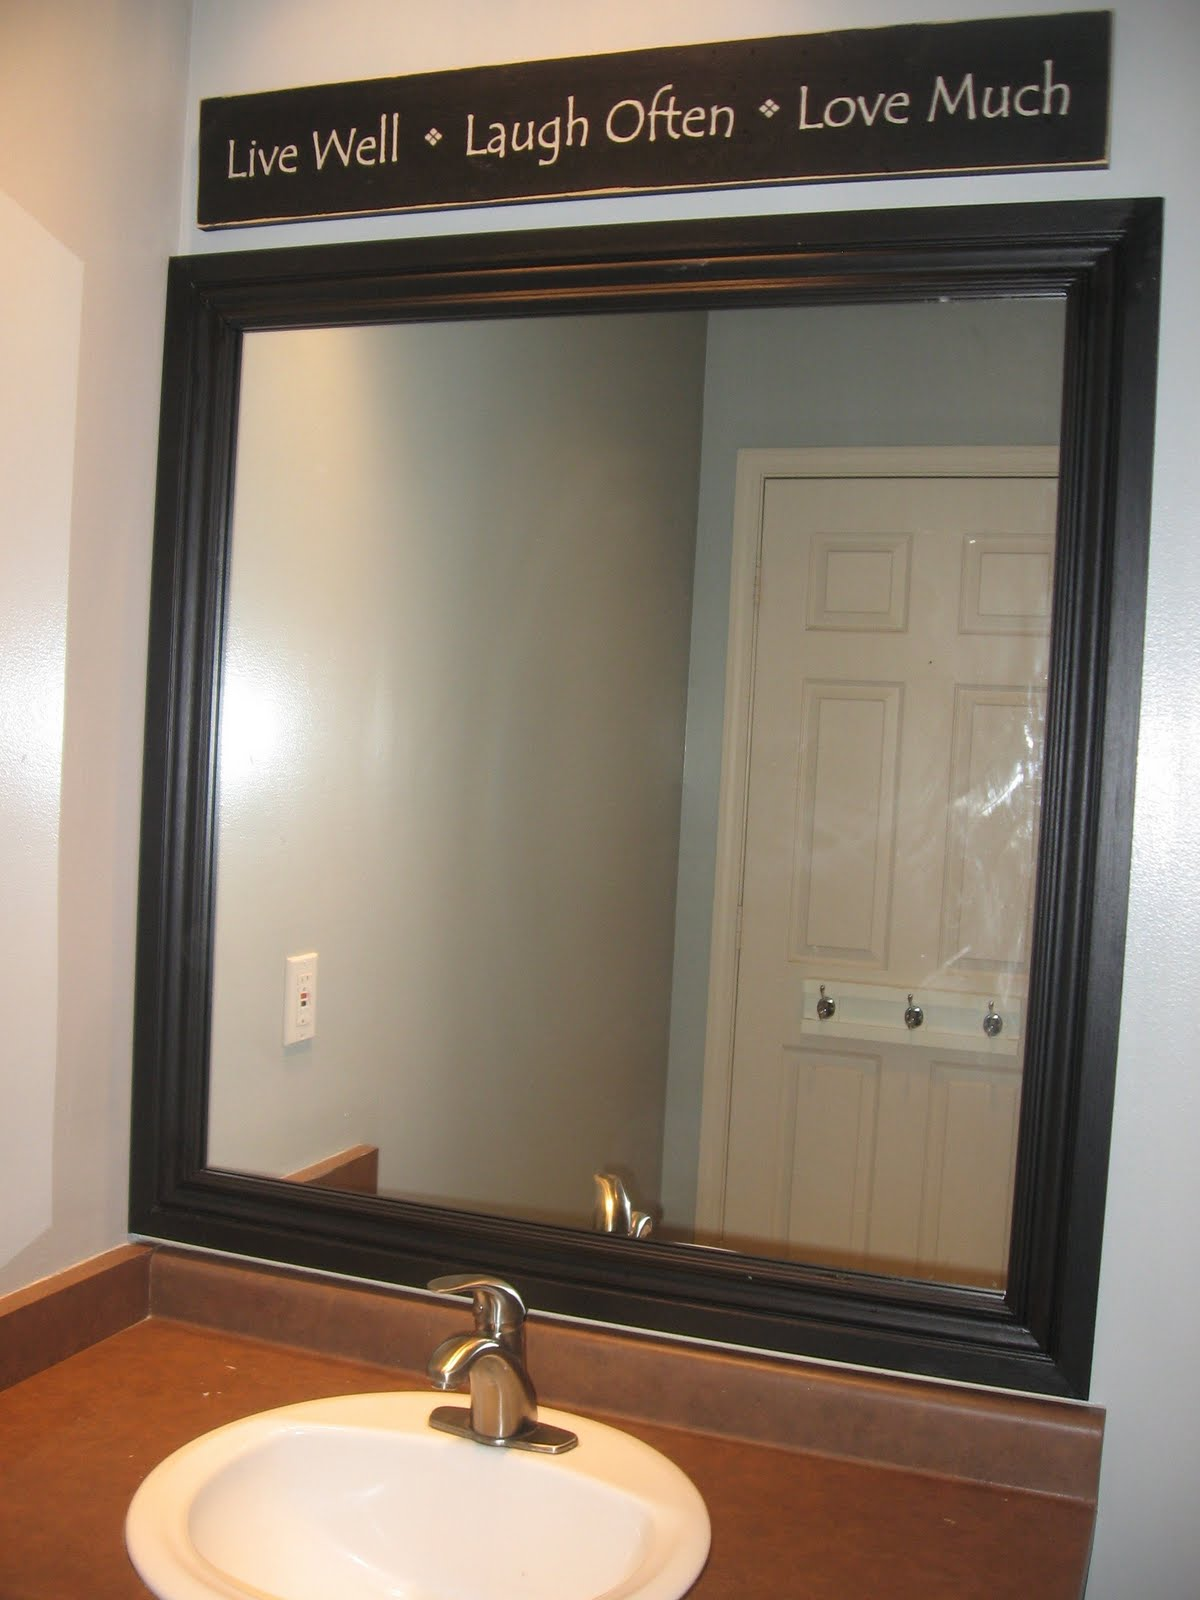 Frame a bathroom mirror with molding - Frame A Bathroom Mirror With Molding 42